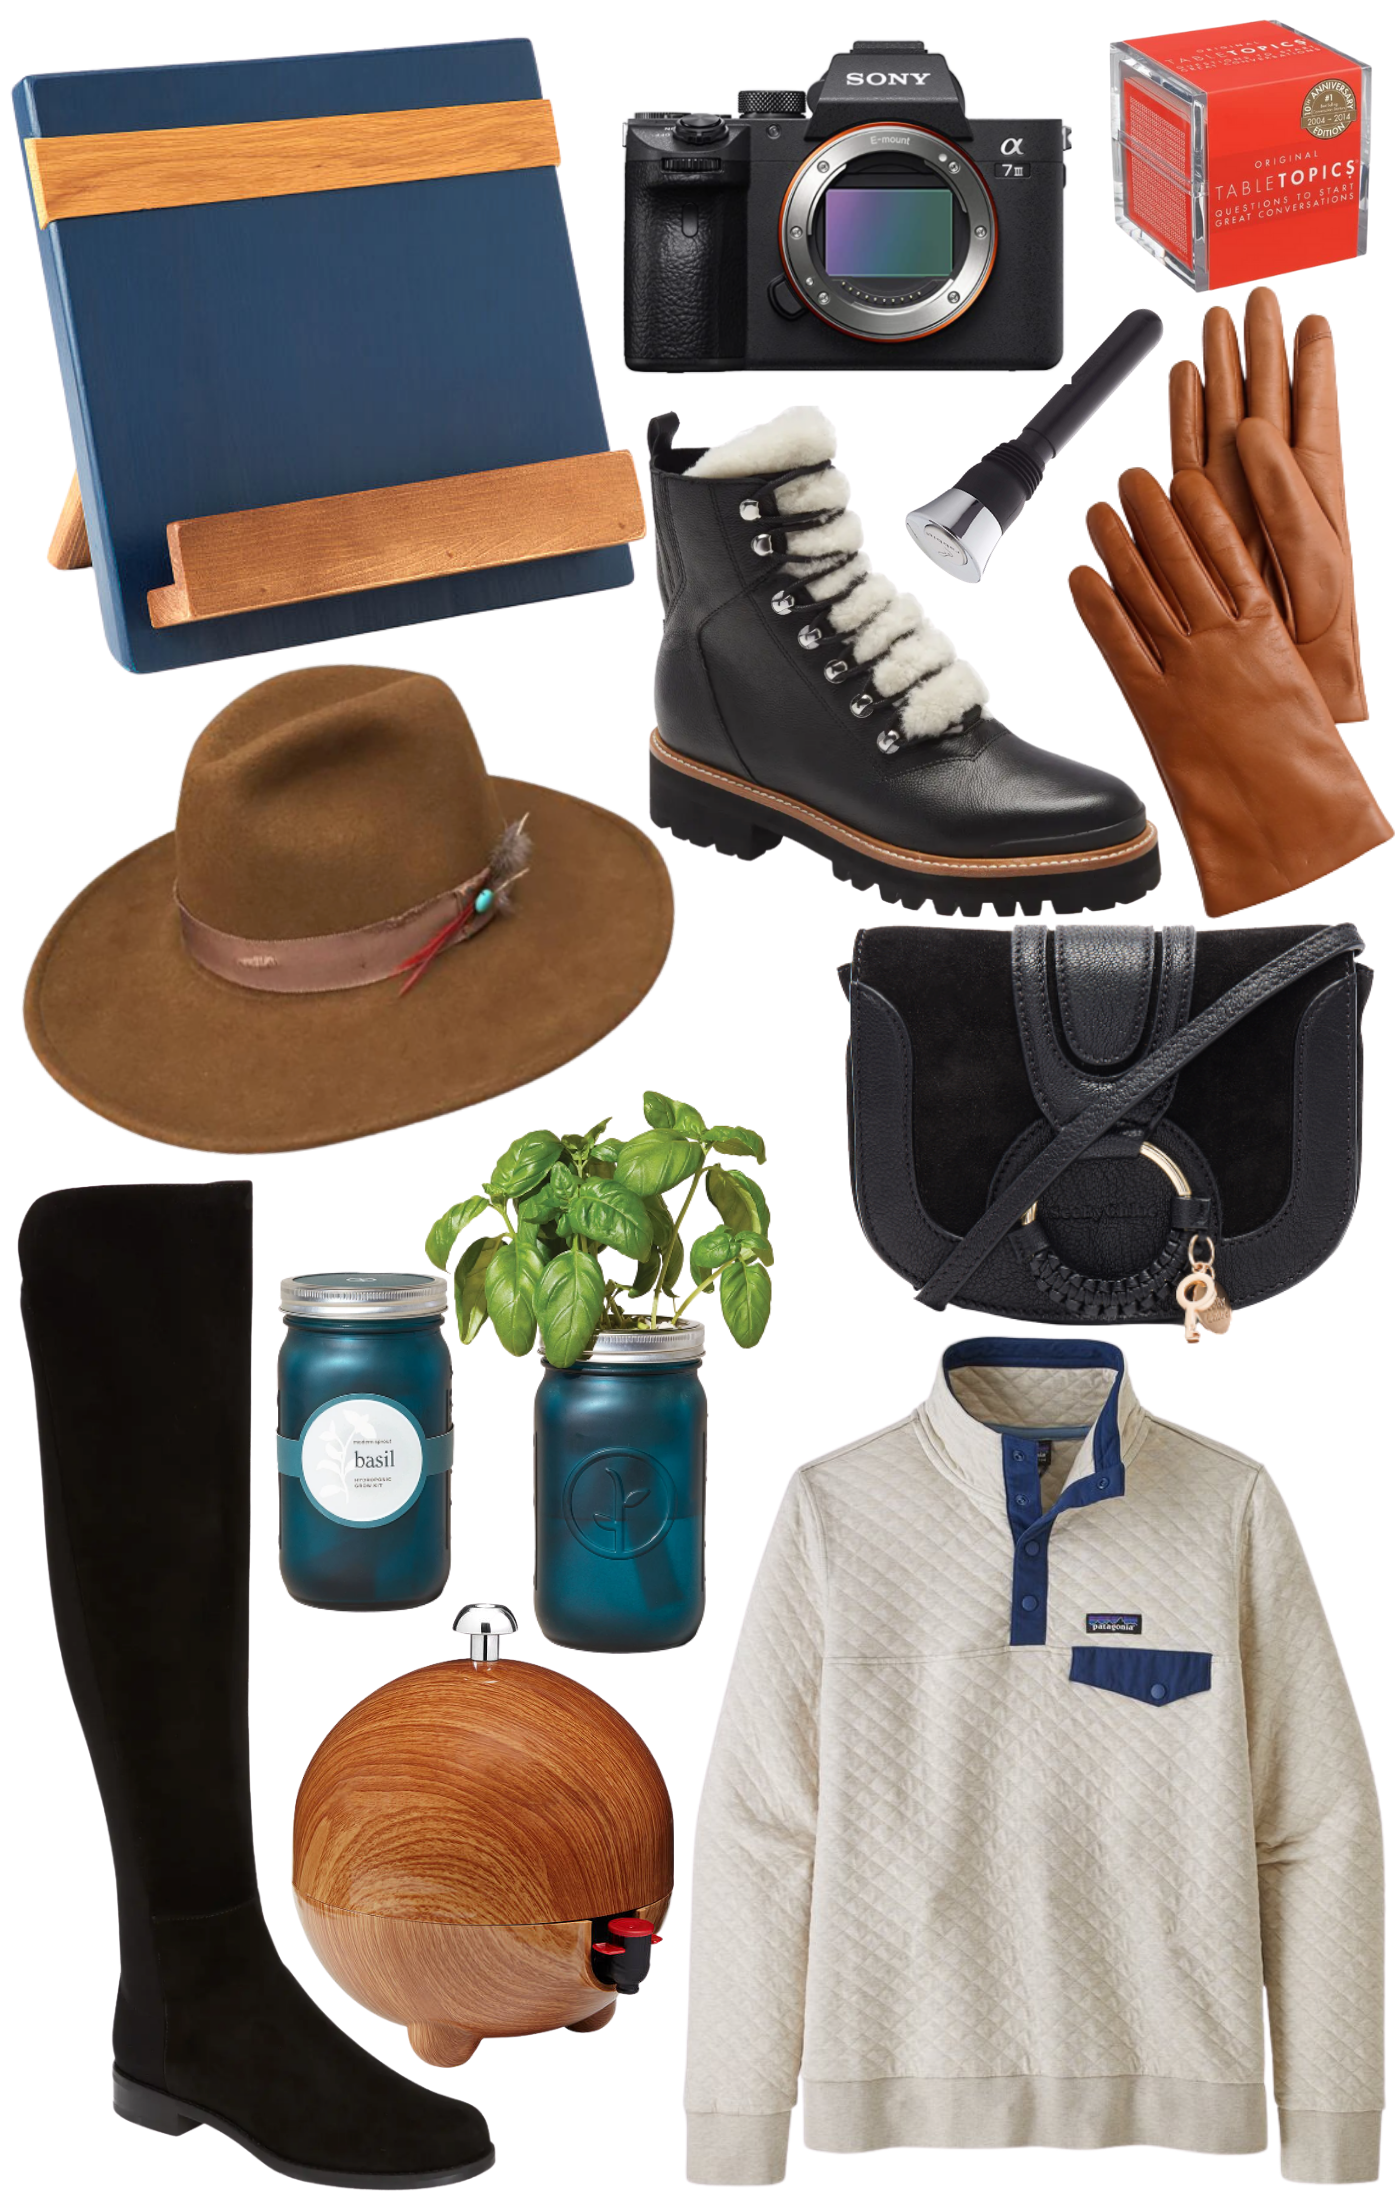 Gift ideas for her collage